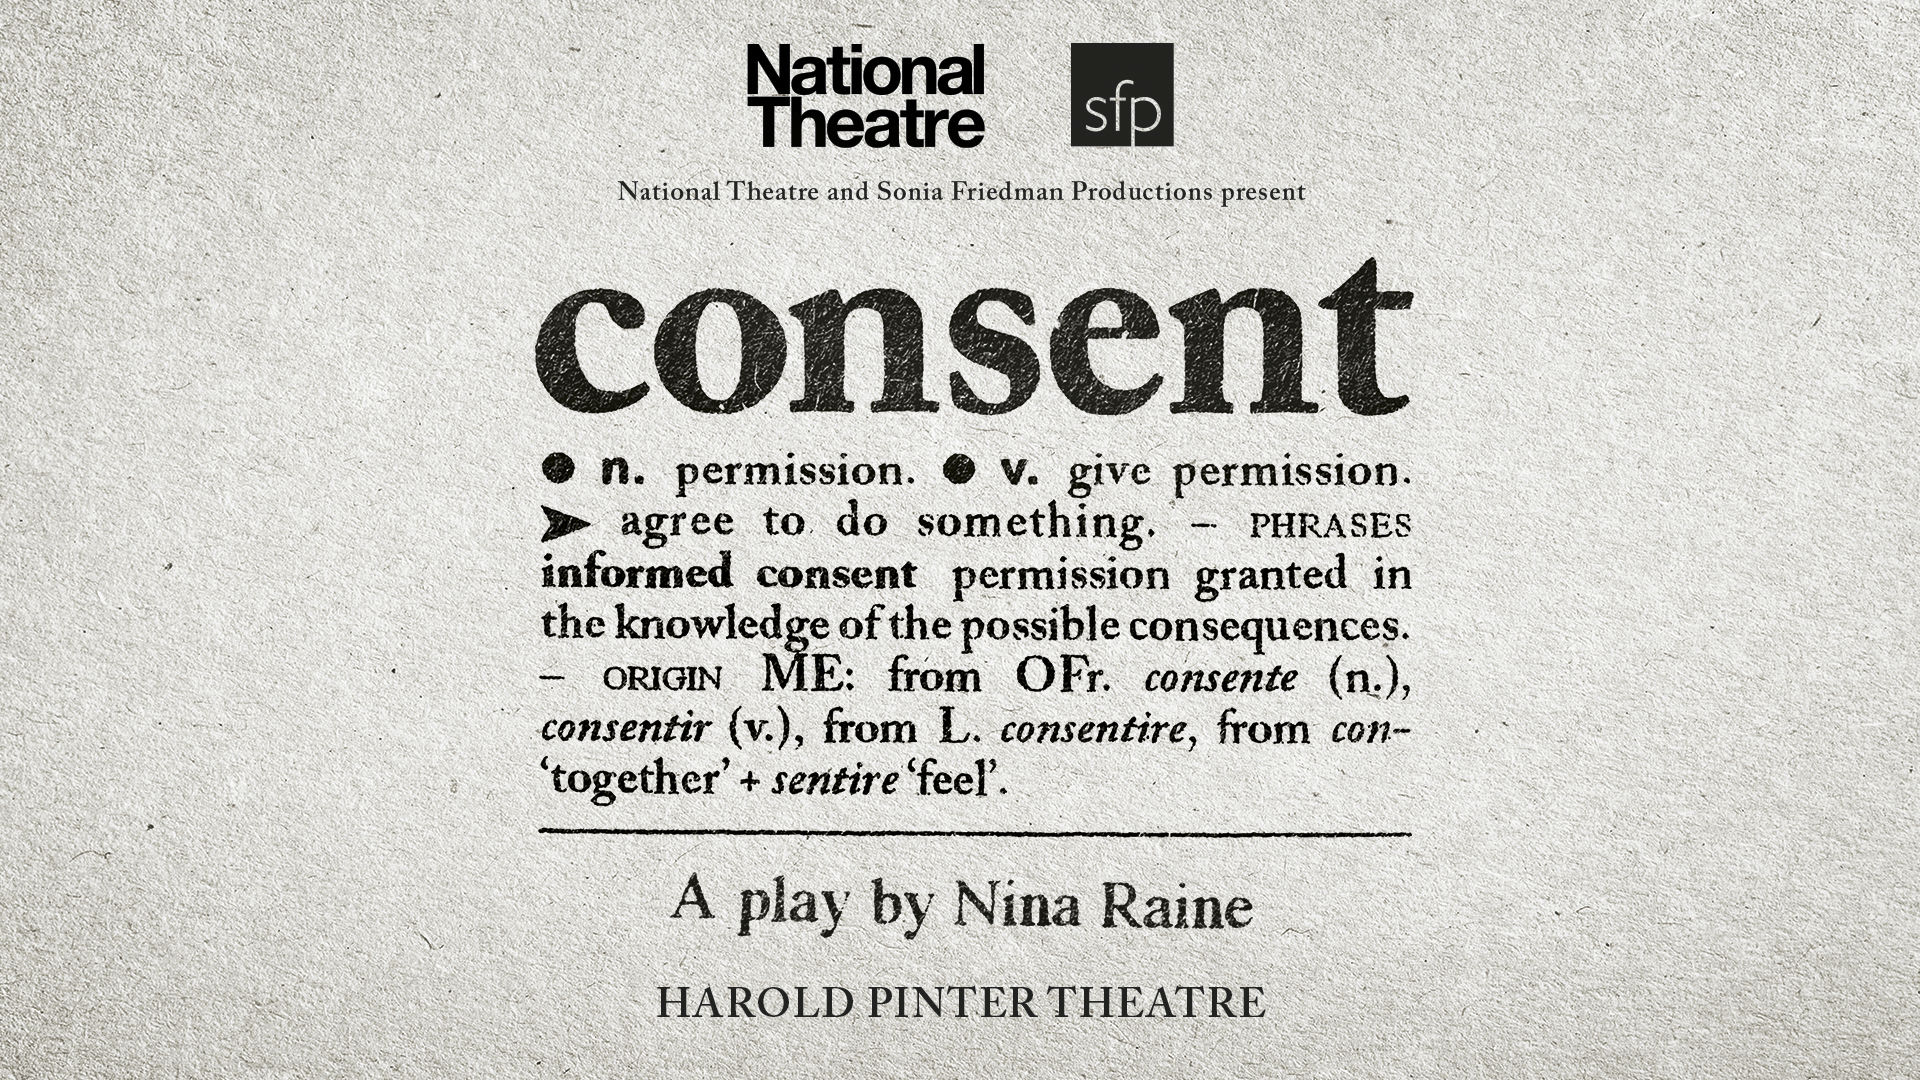 Consent at Harold Pinter Theatre promotional poster. Image courtesy of Harold Pinter Theatre.